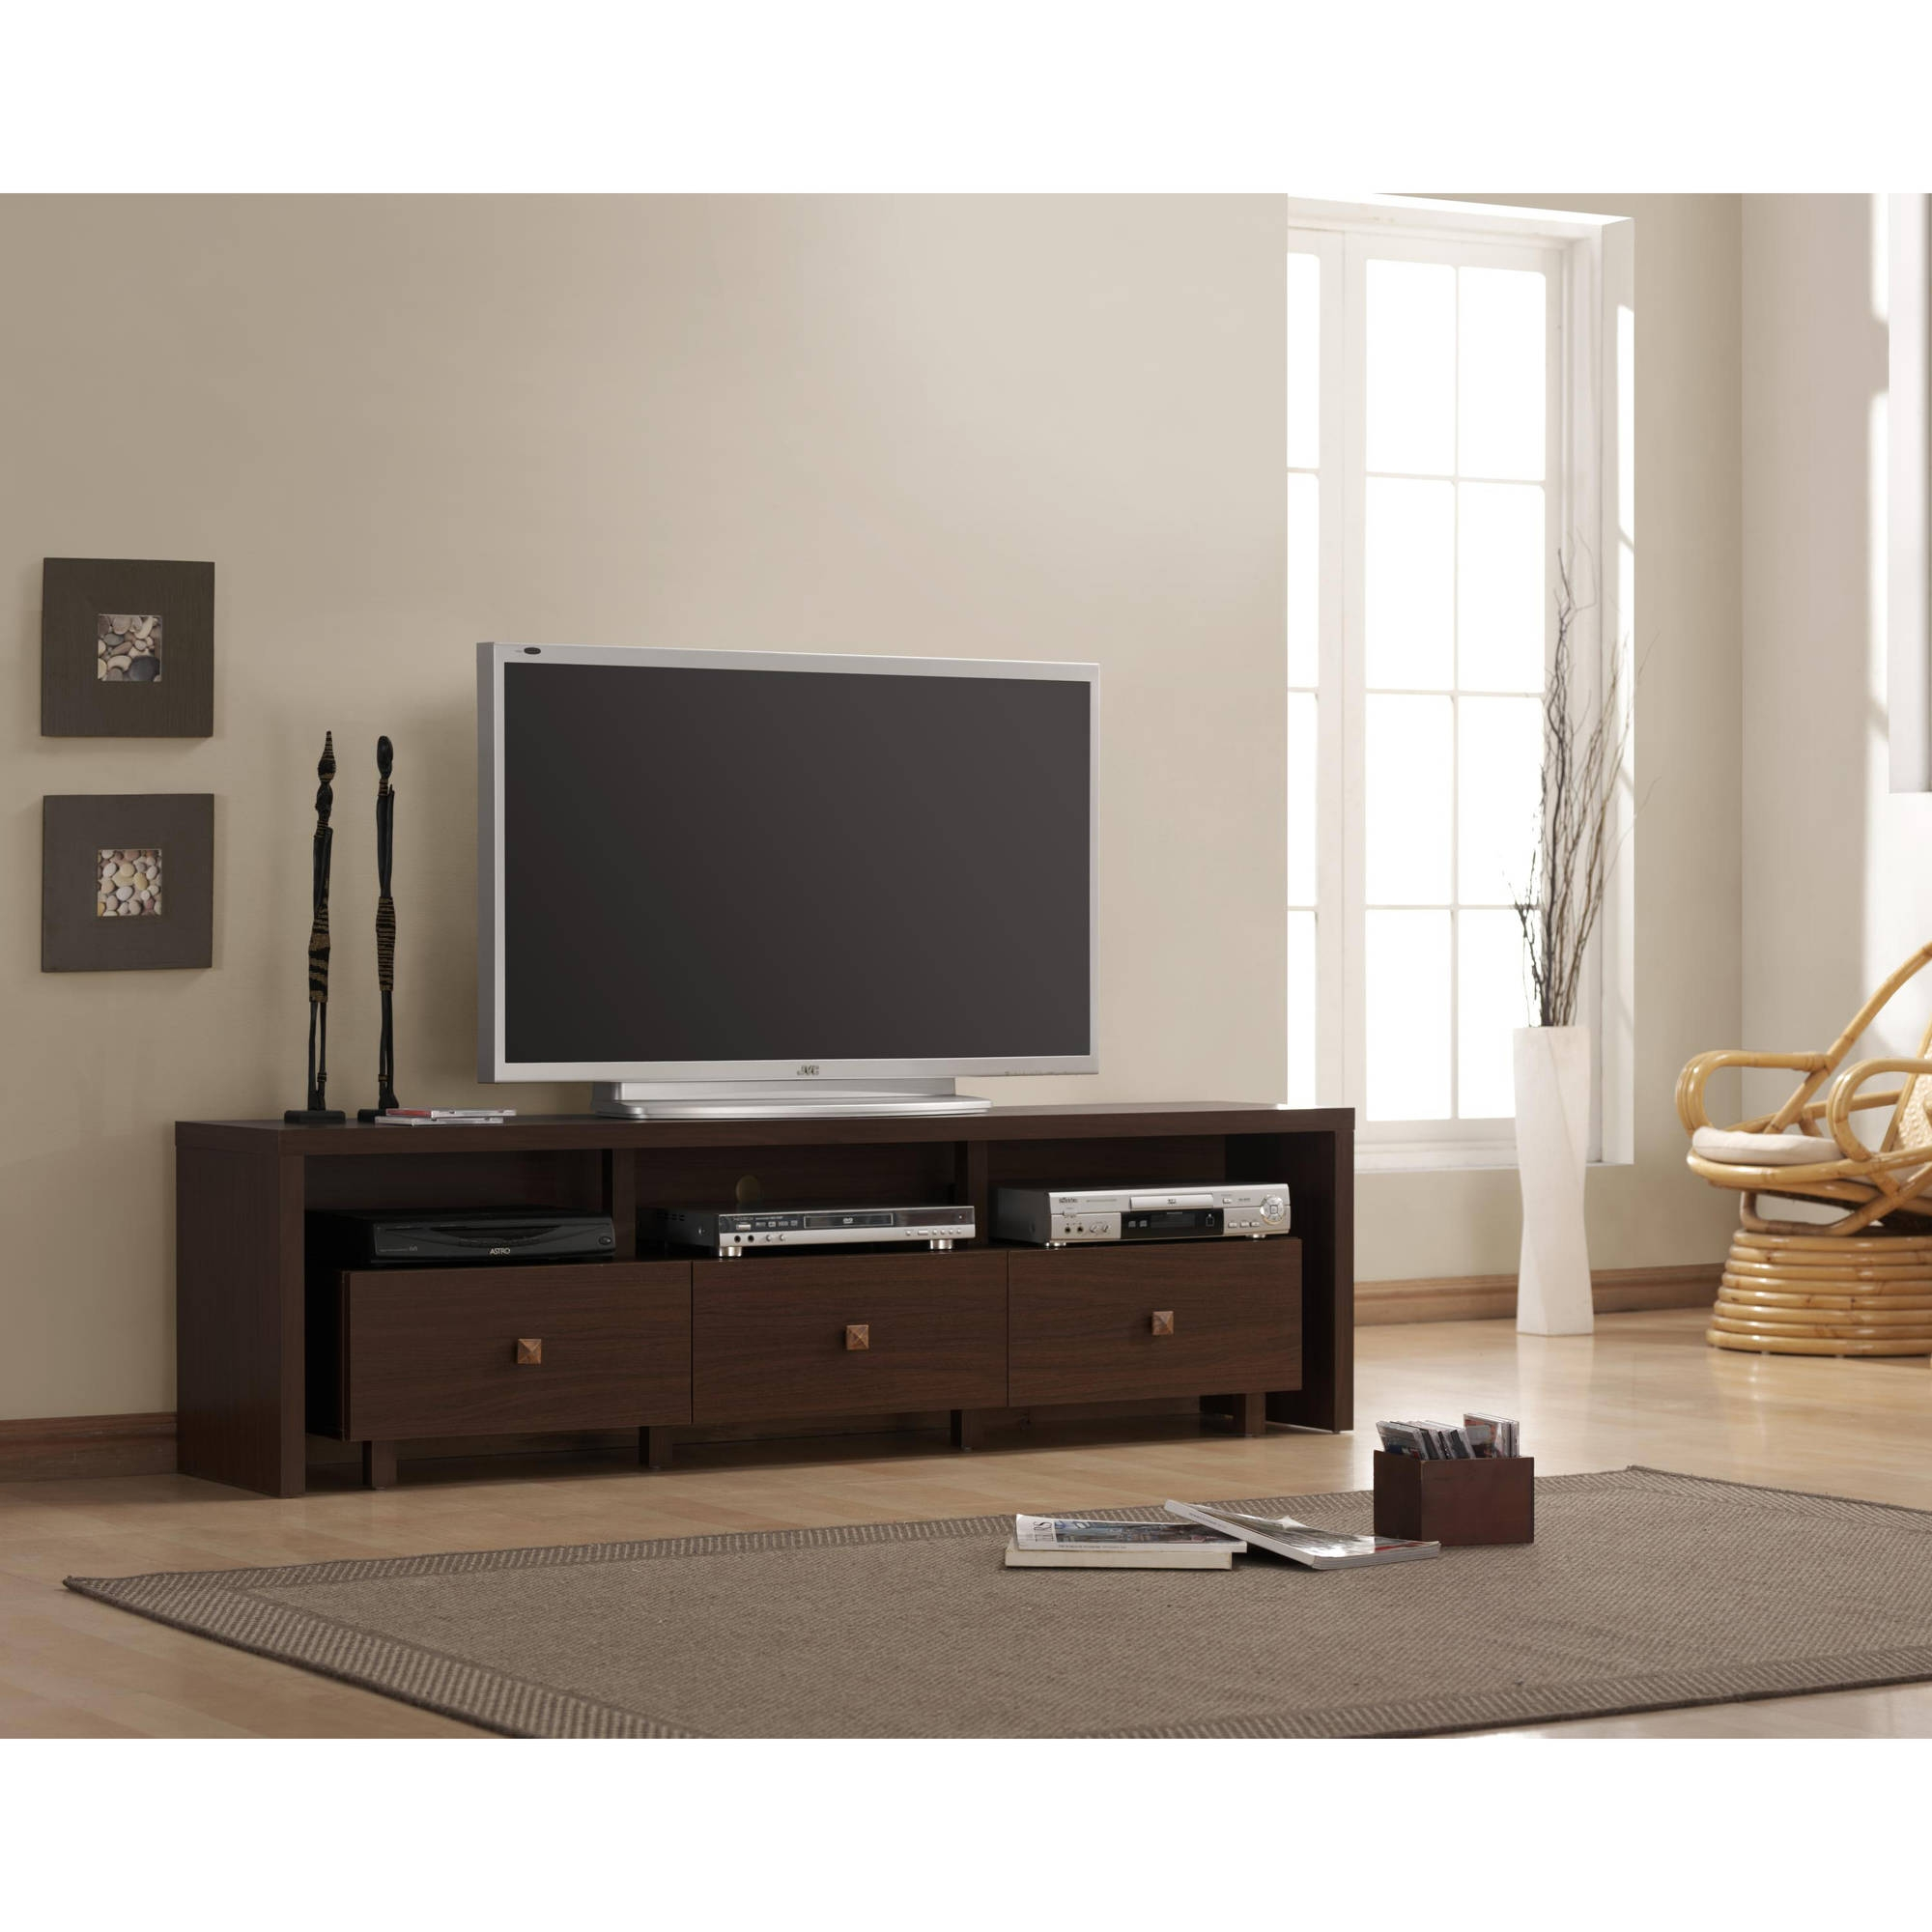 Tv Cabinet With Dvd Storage